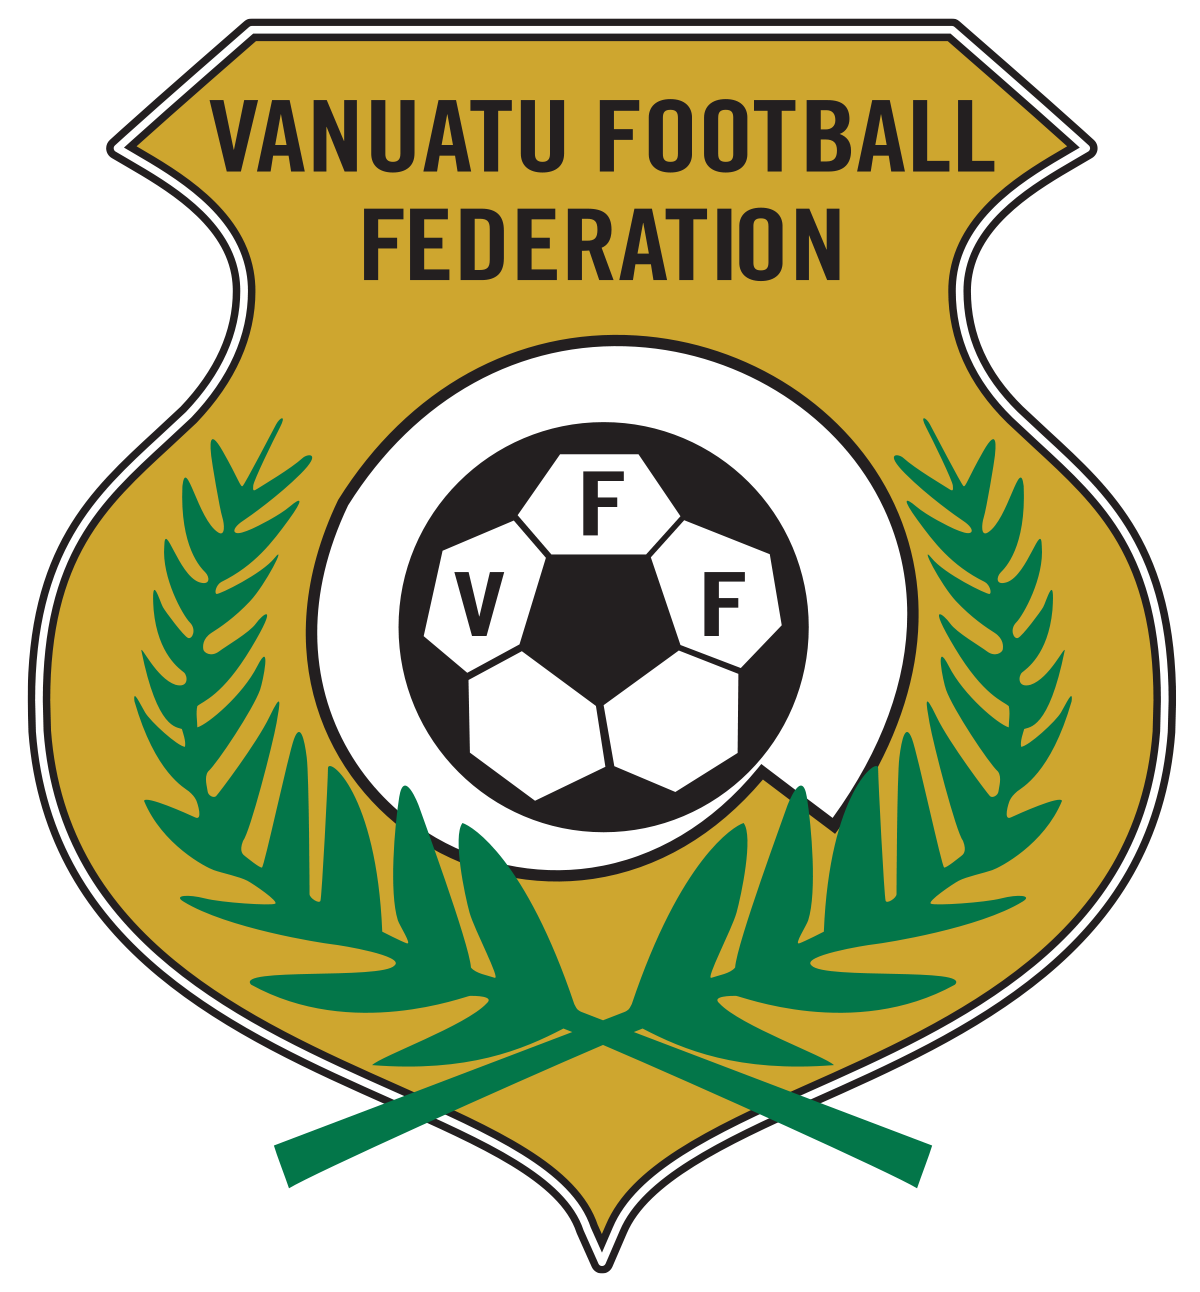 Png south pacific games 2015. Vanuatu national football team